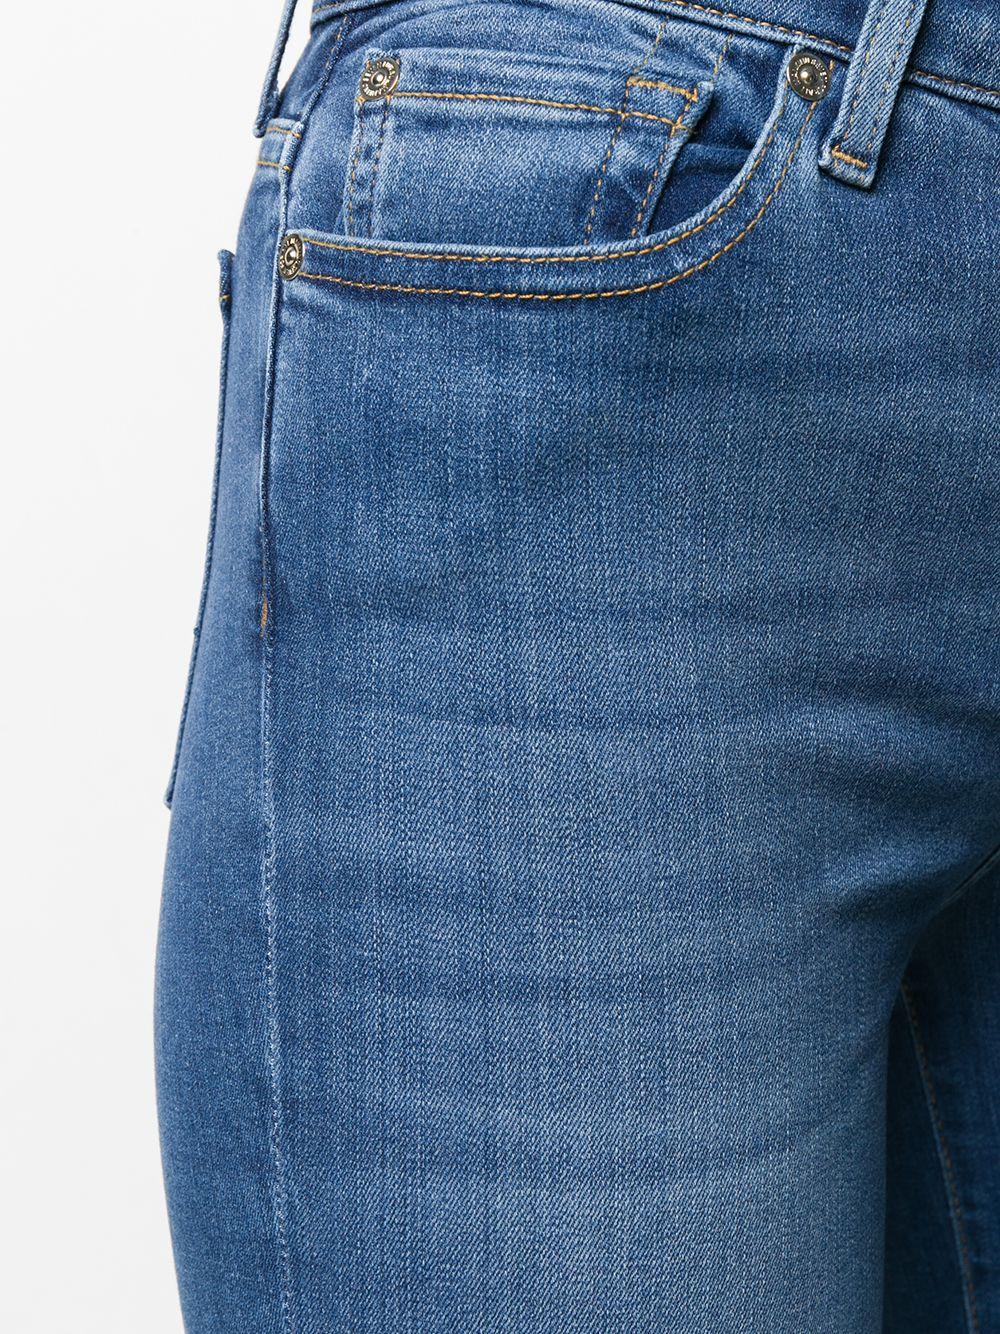 Picture of 7 For All Mankind   Pyper Slim Jeans